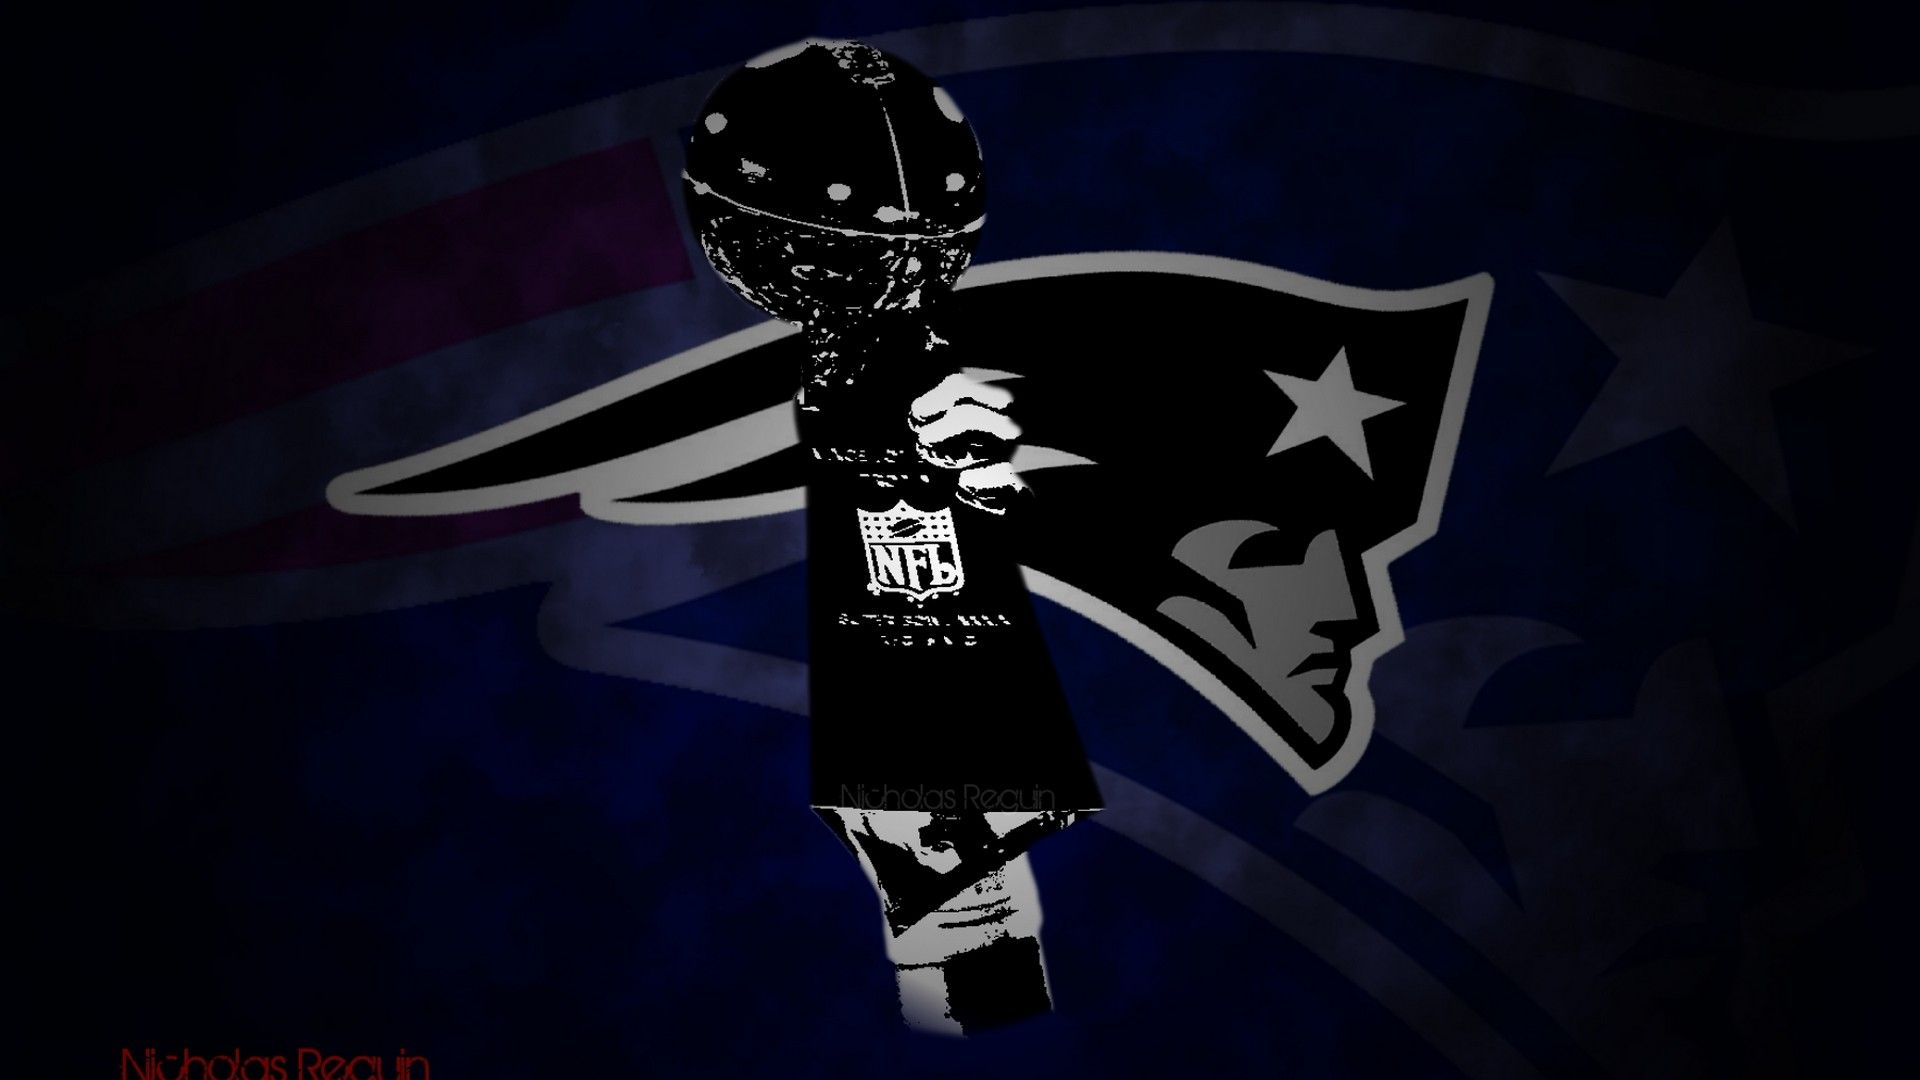 HD Desktop Wallpaper NE Patriots New england patriots